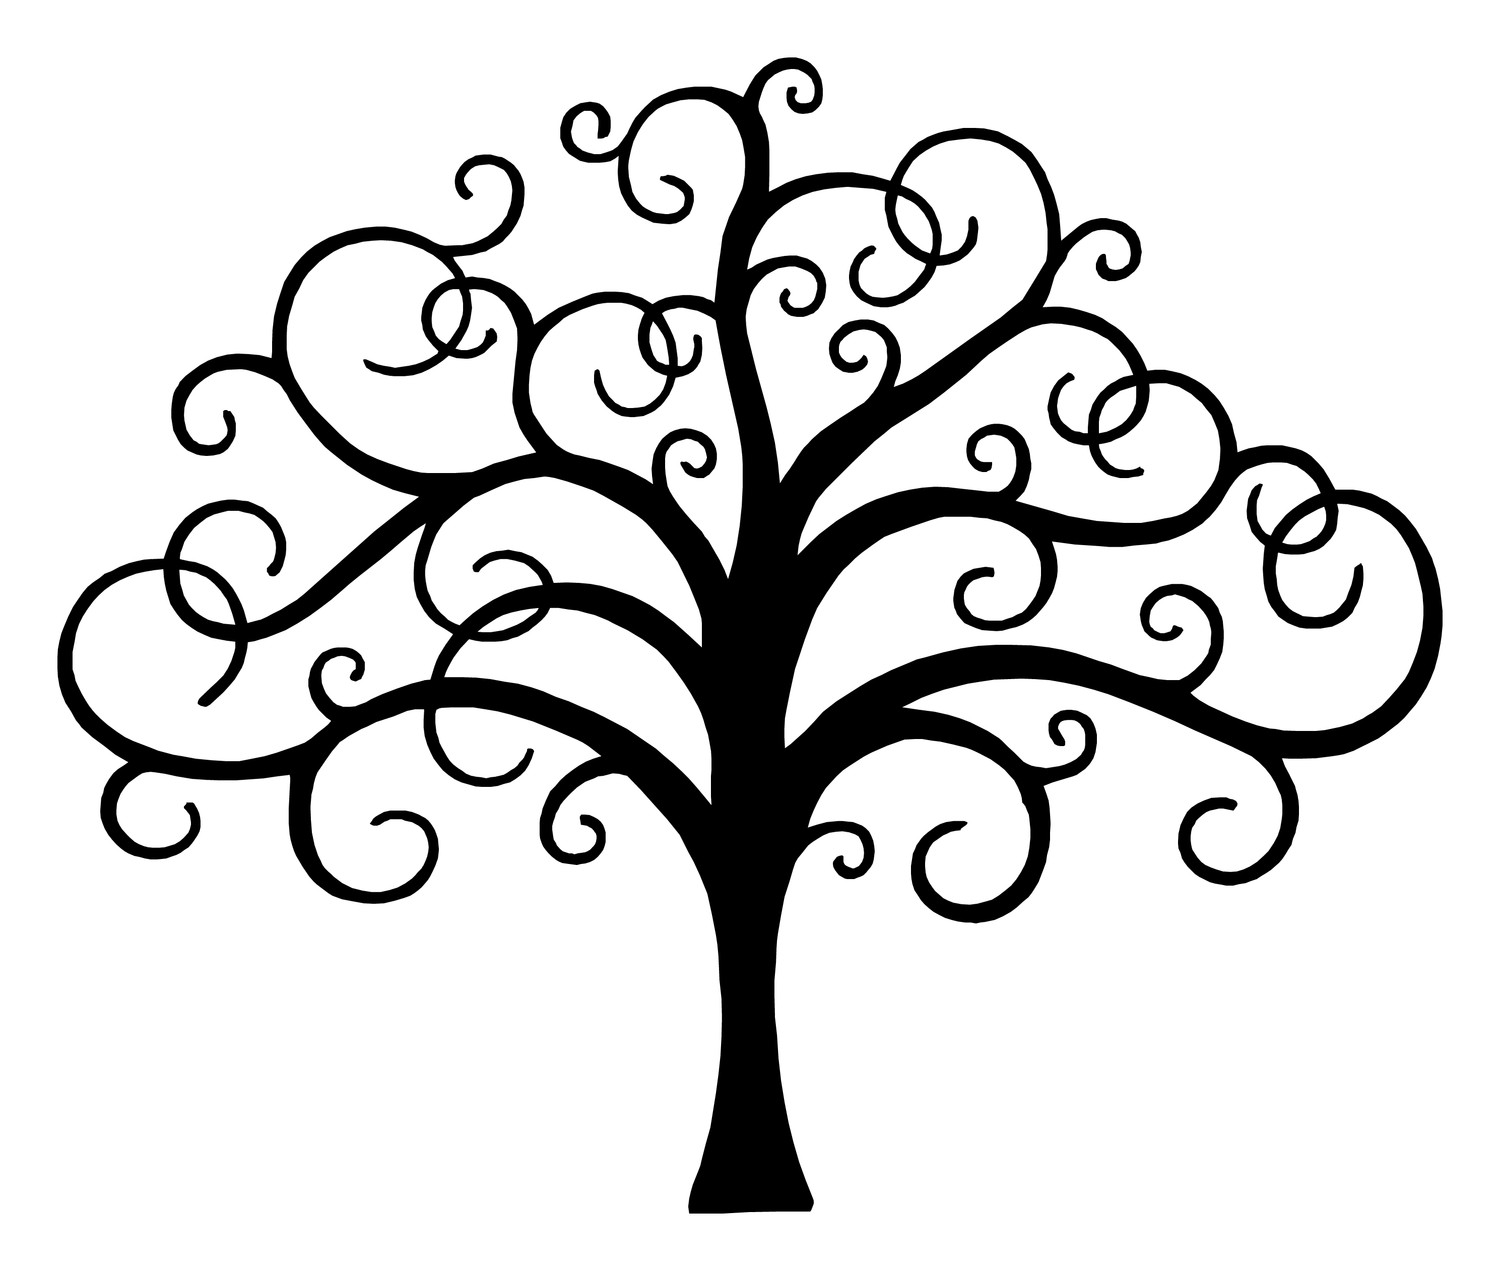 1500x1271 Self Family Tree Clipart, Explore Pictures